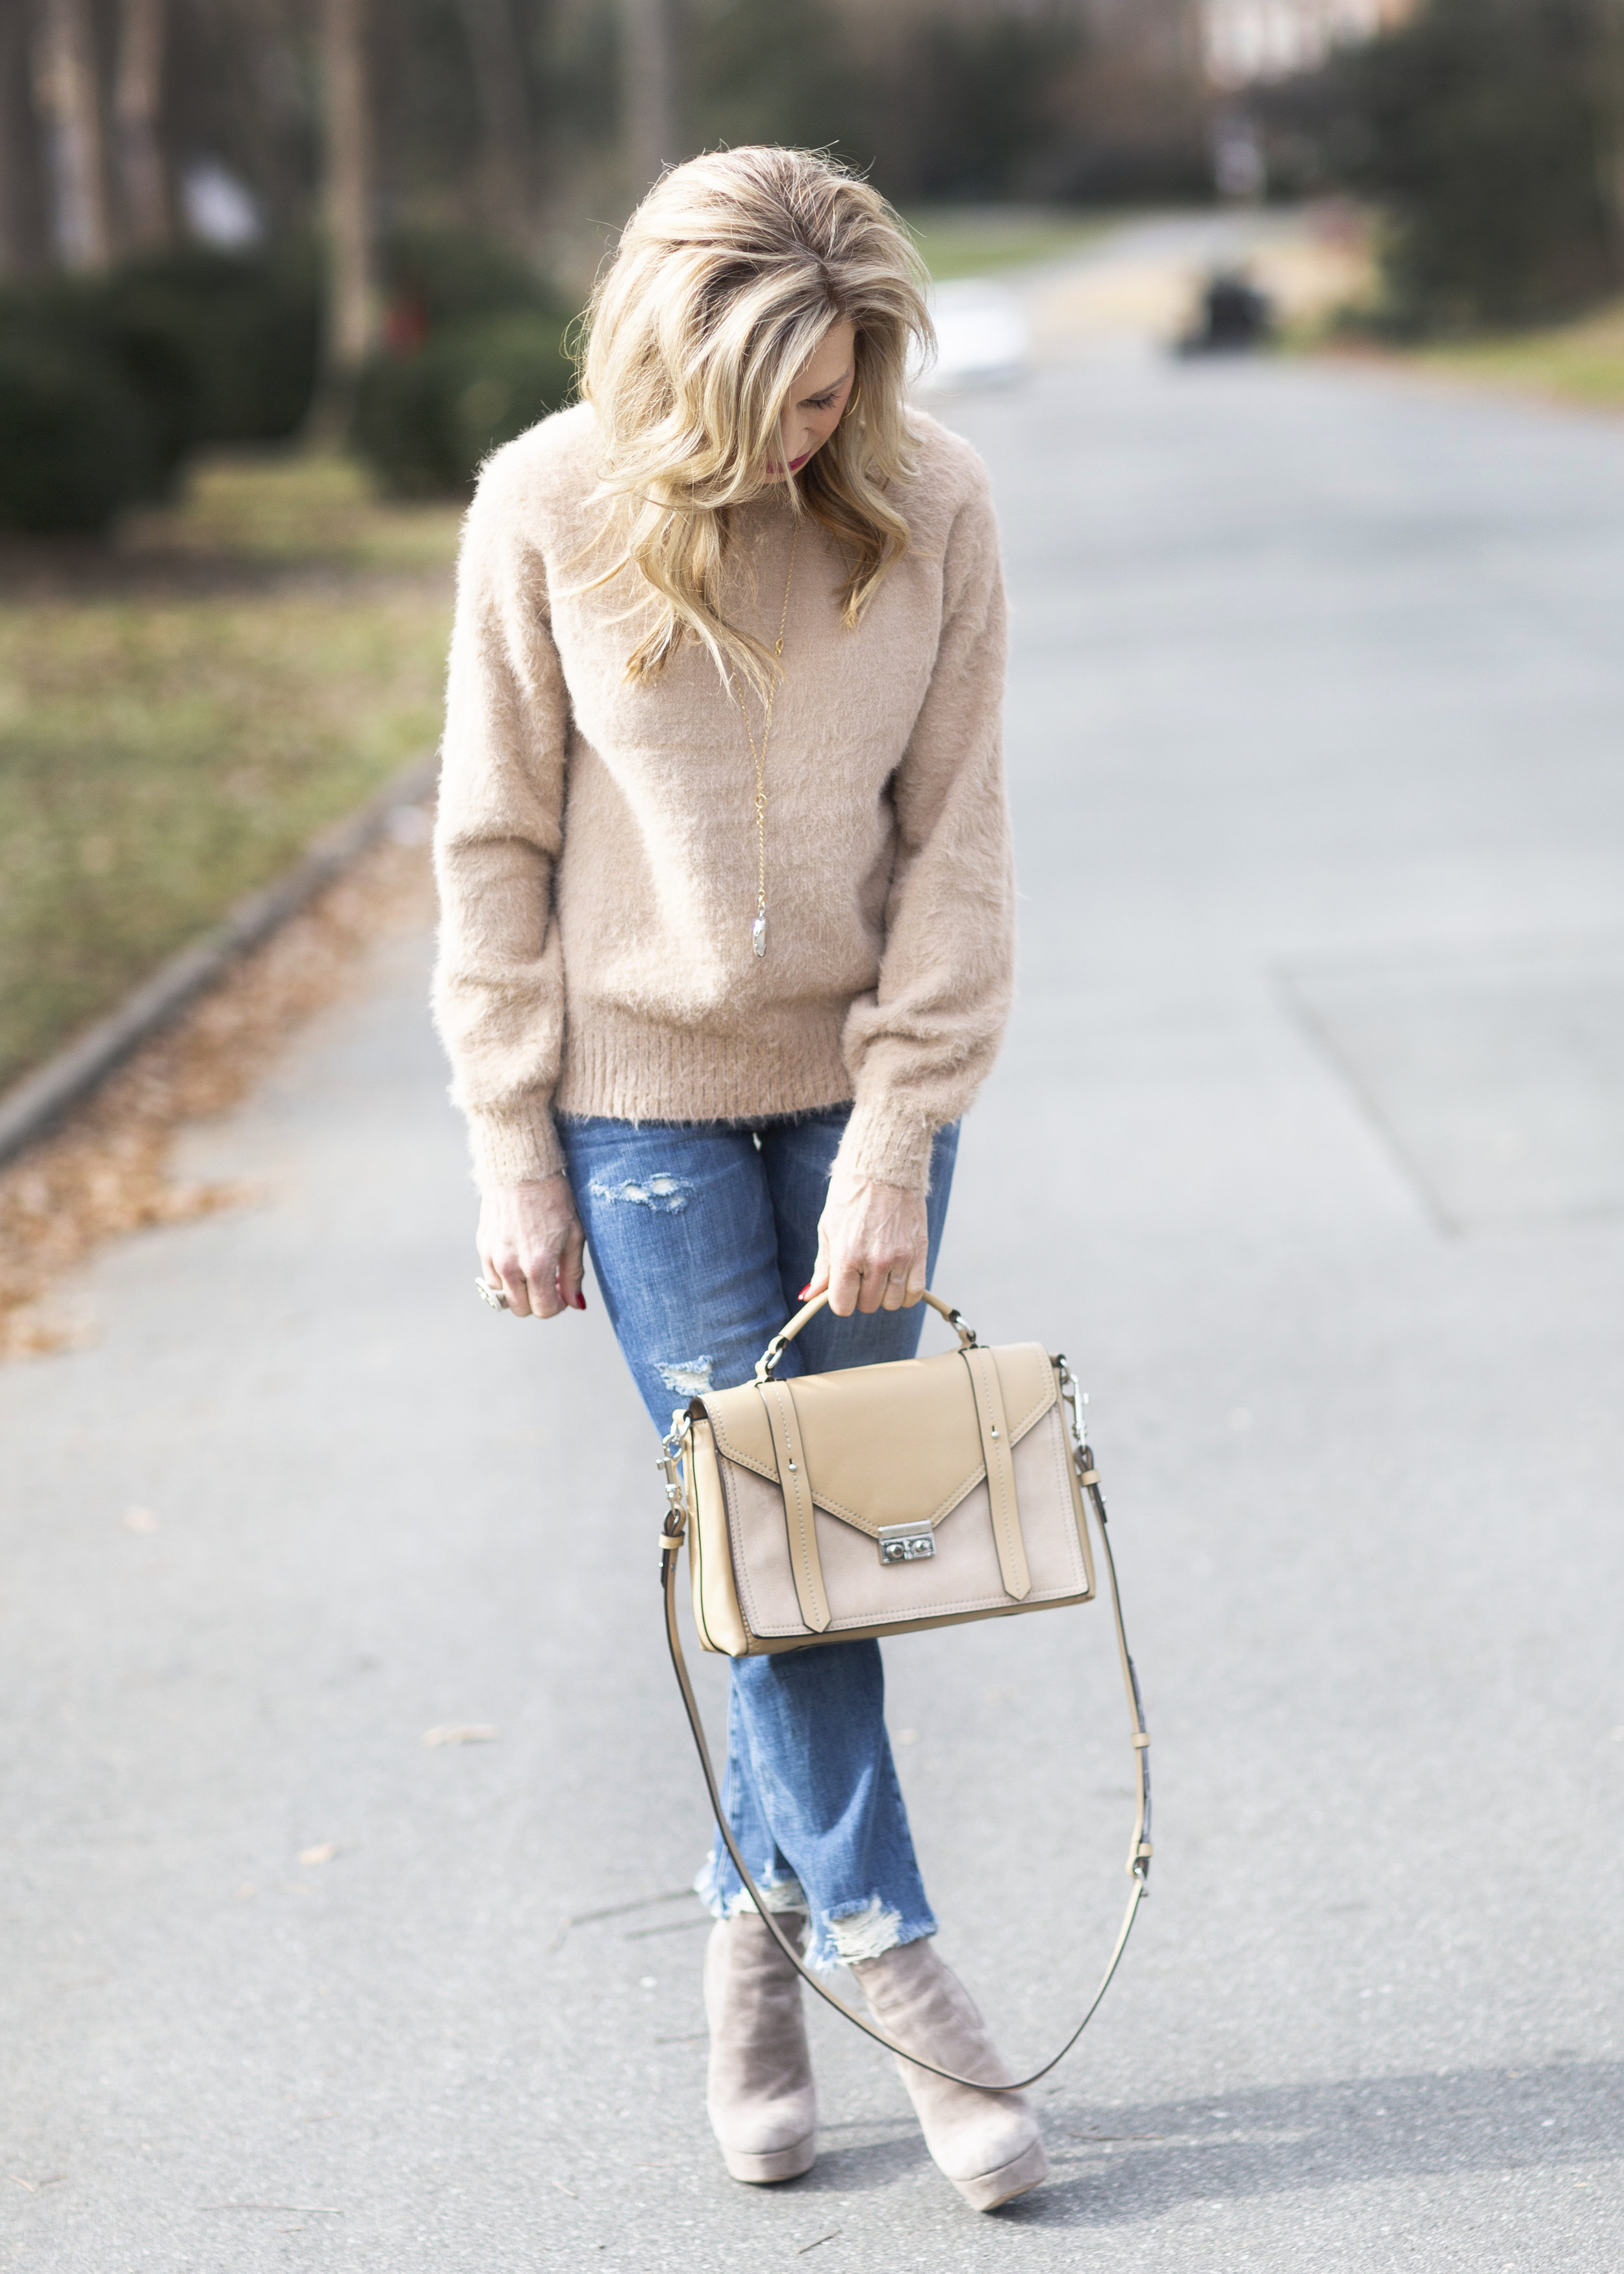 Winter Fashion - Crazy Blonde Style